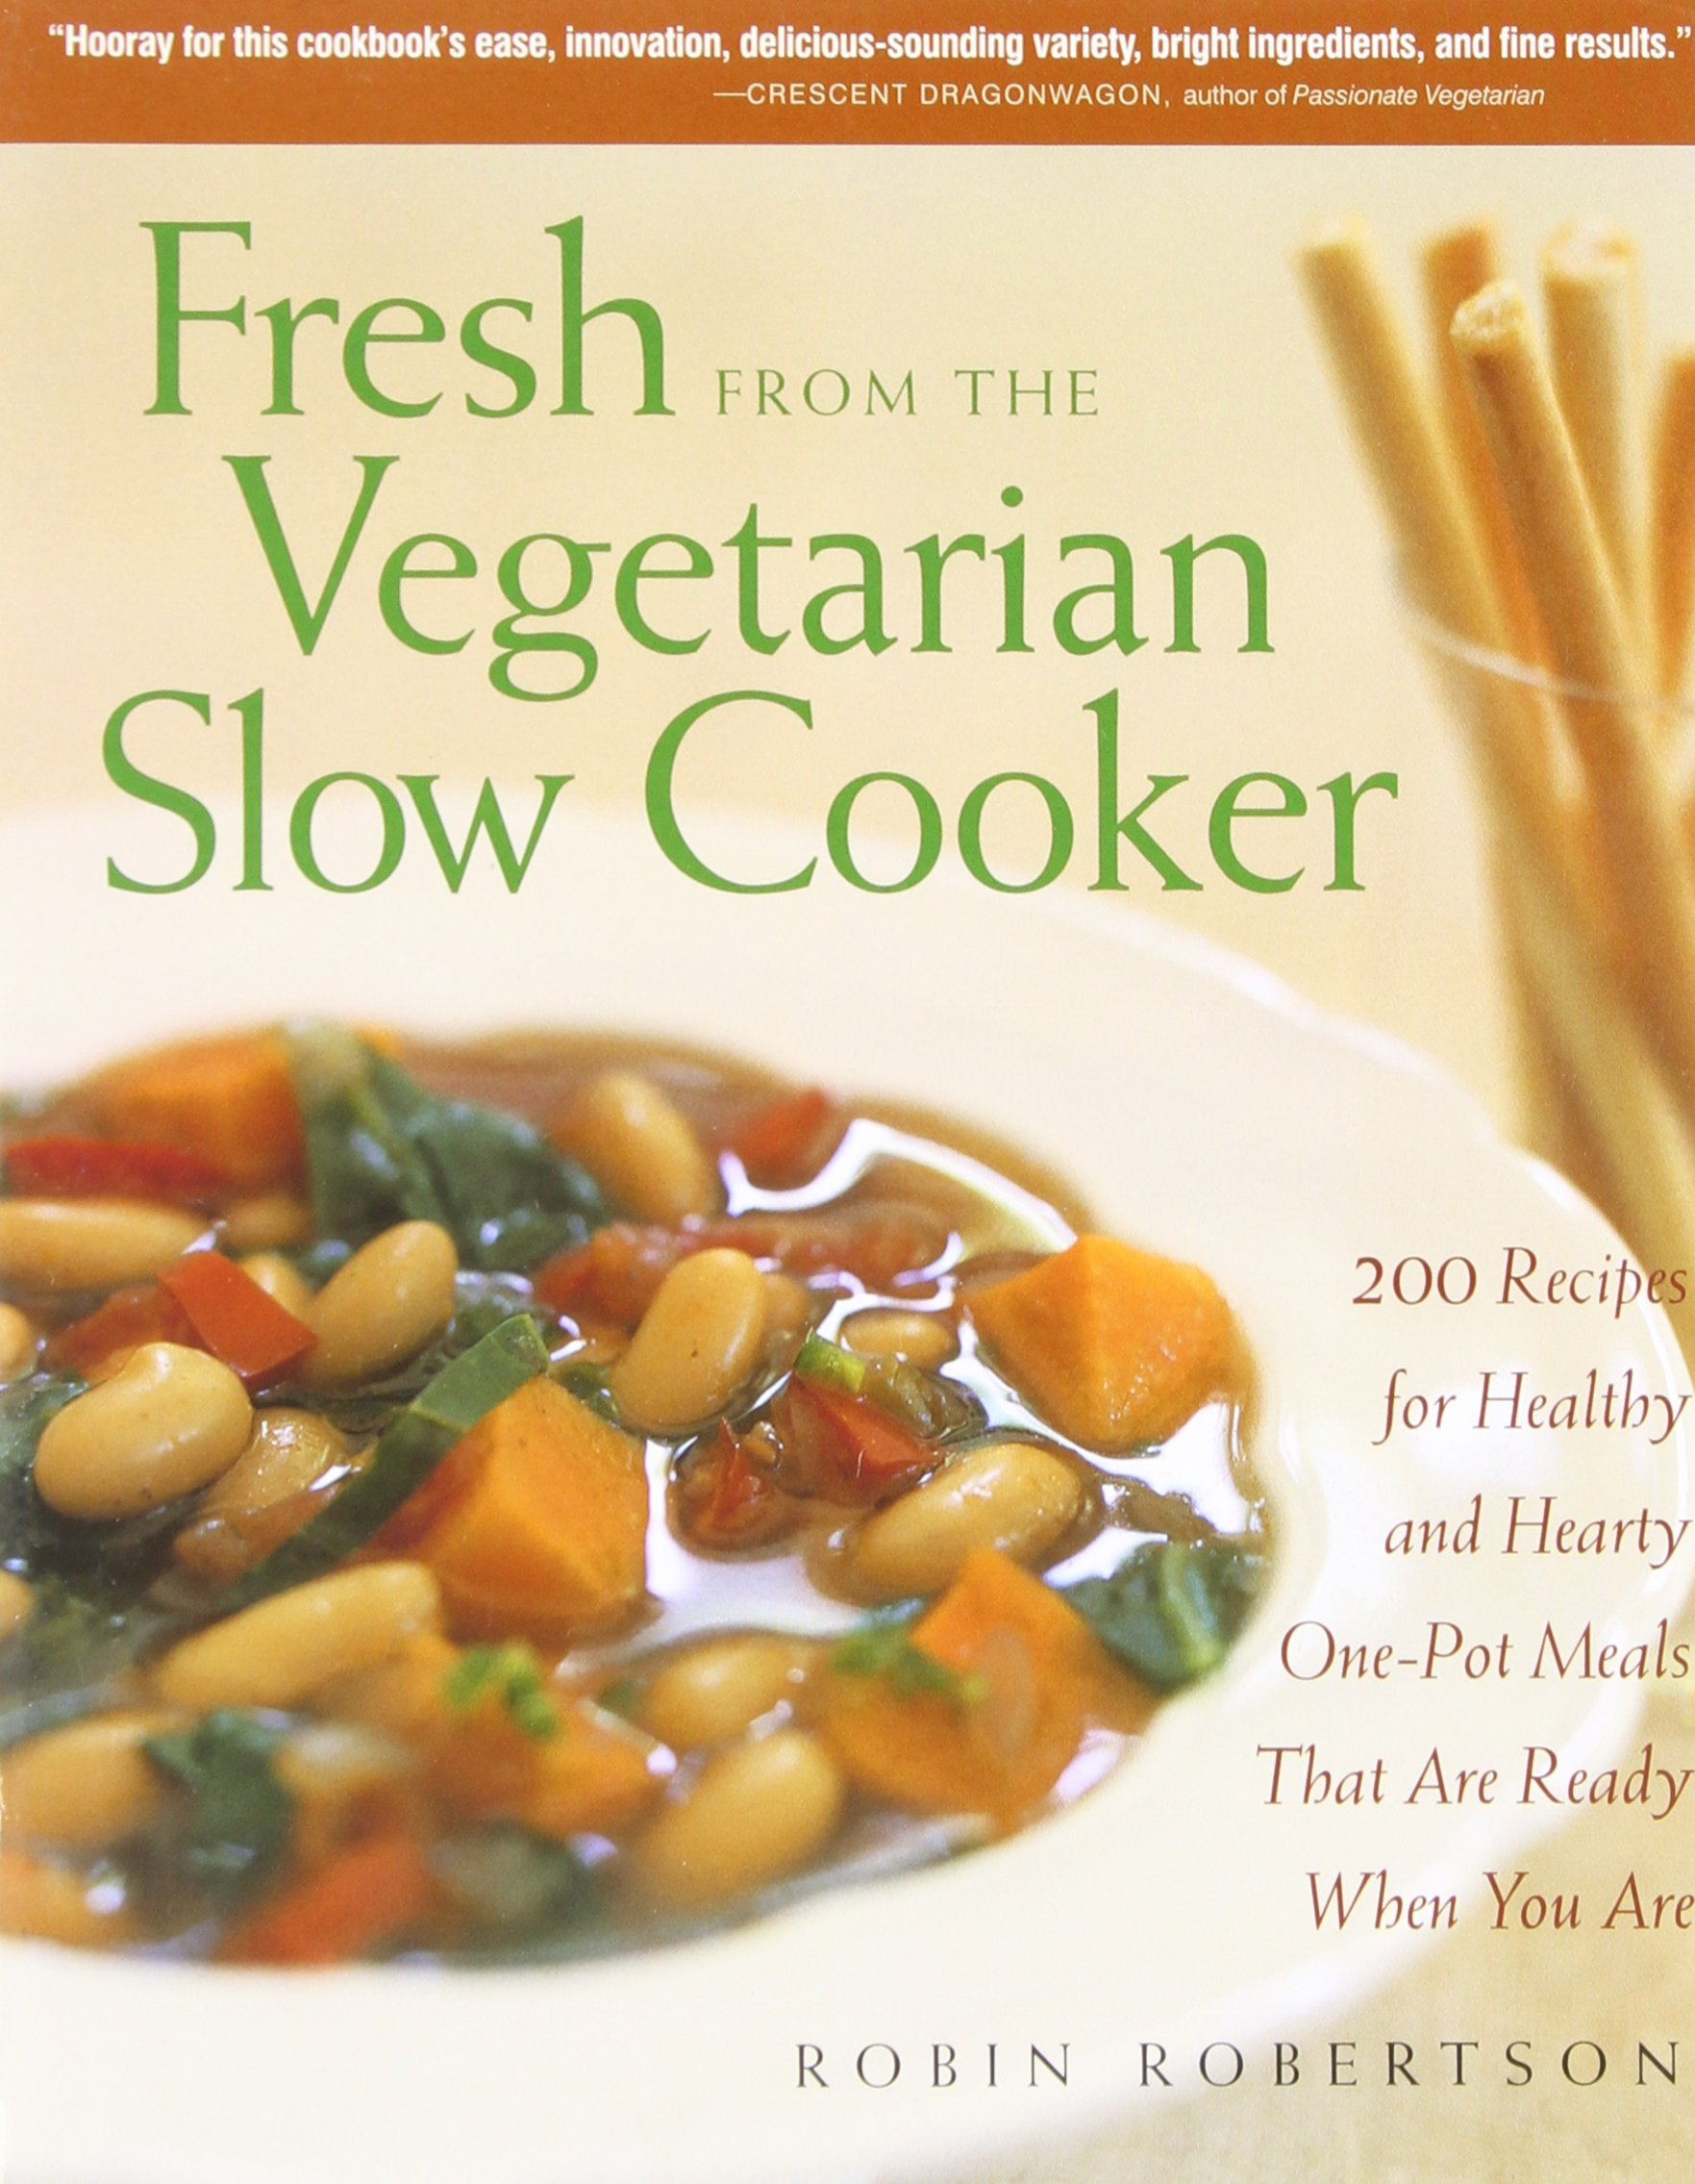 Fresh-from-the-Vegetarian-Slow-Cooker